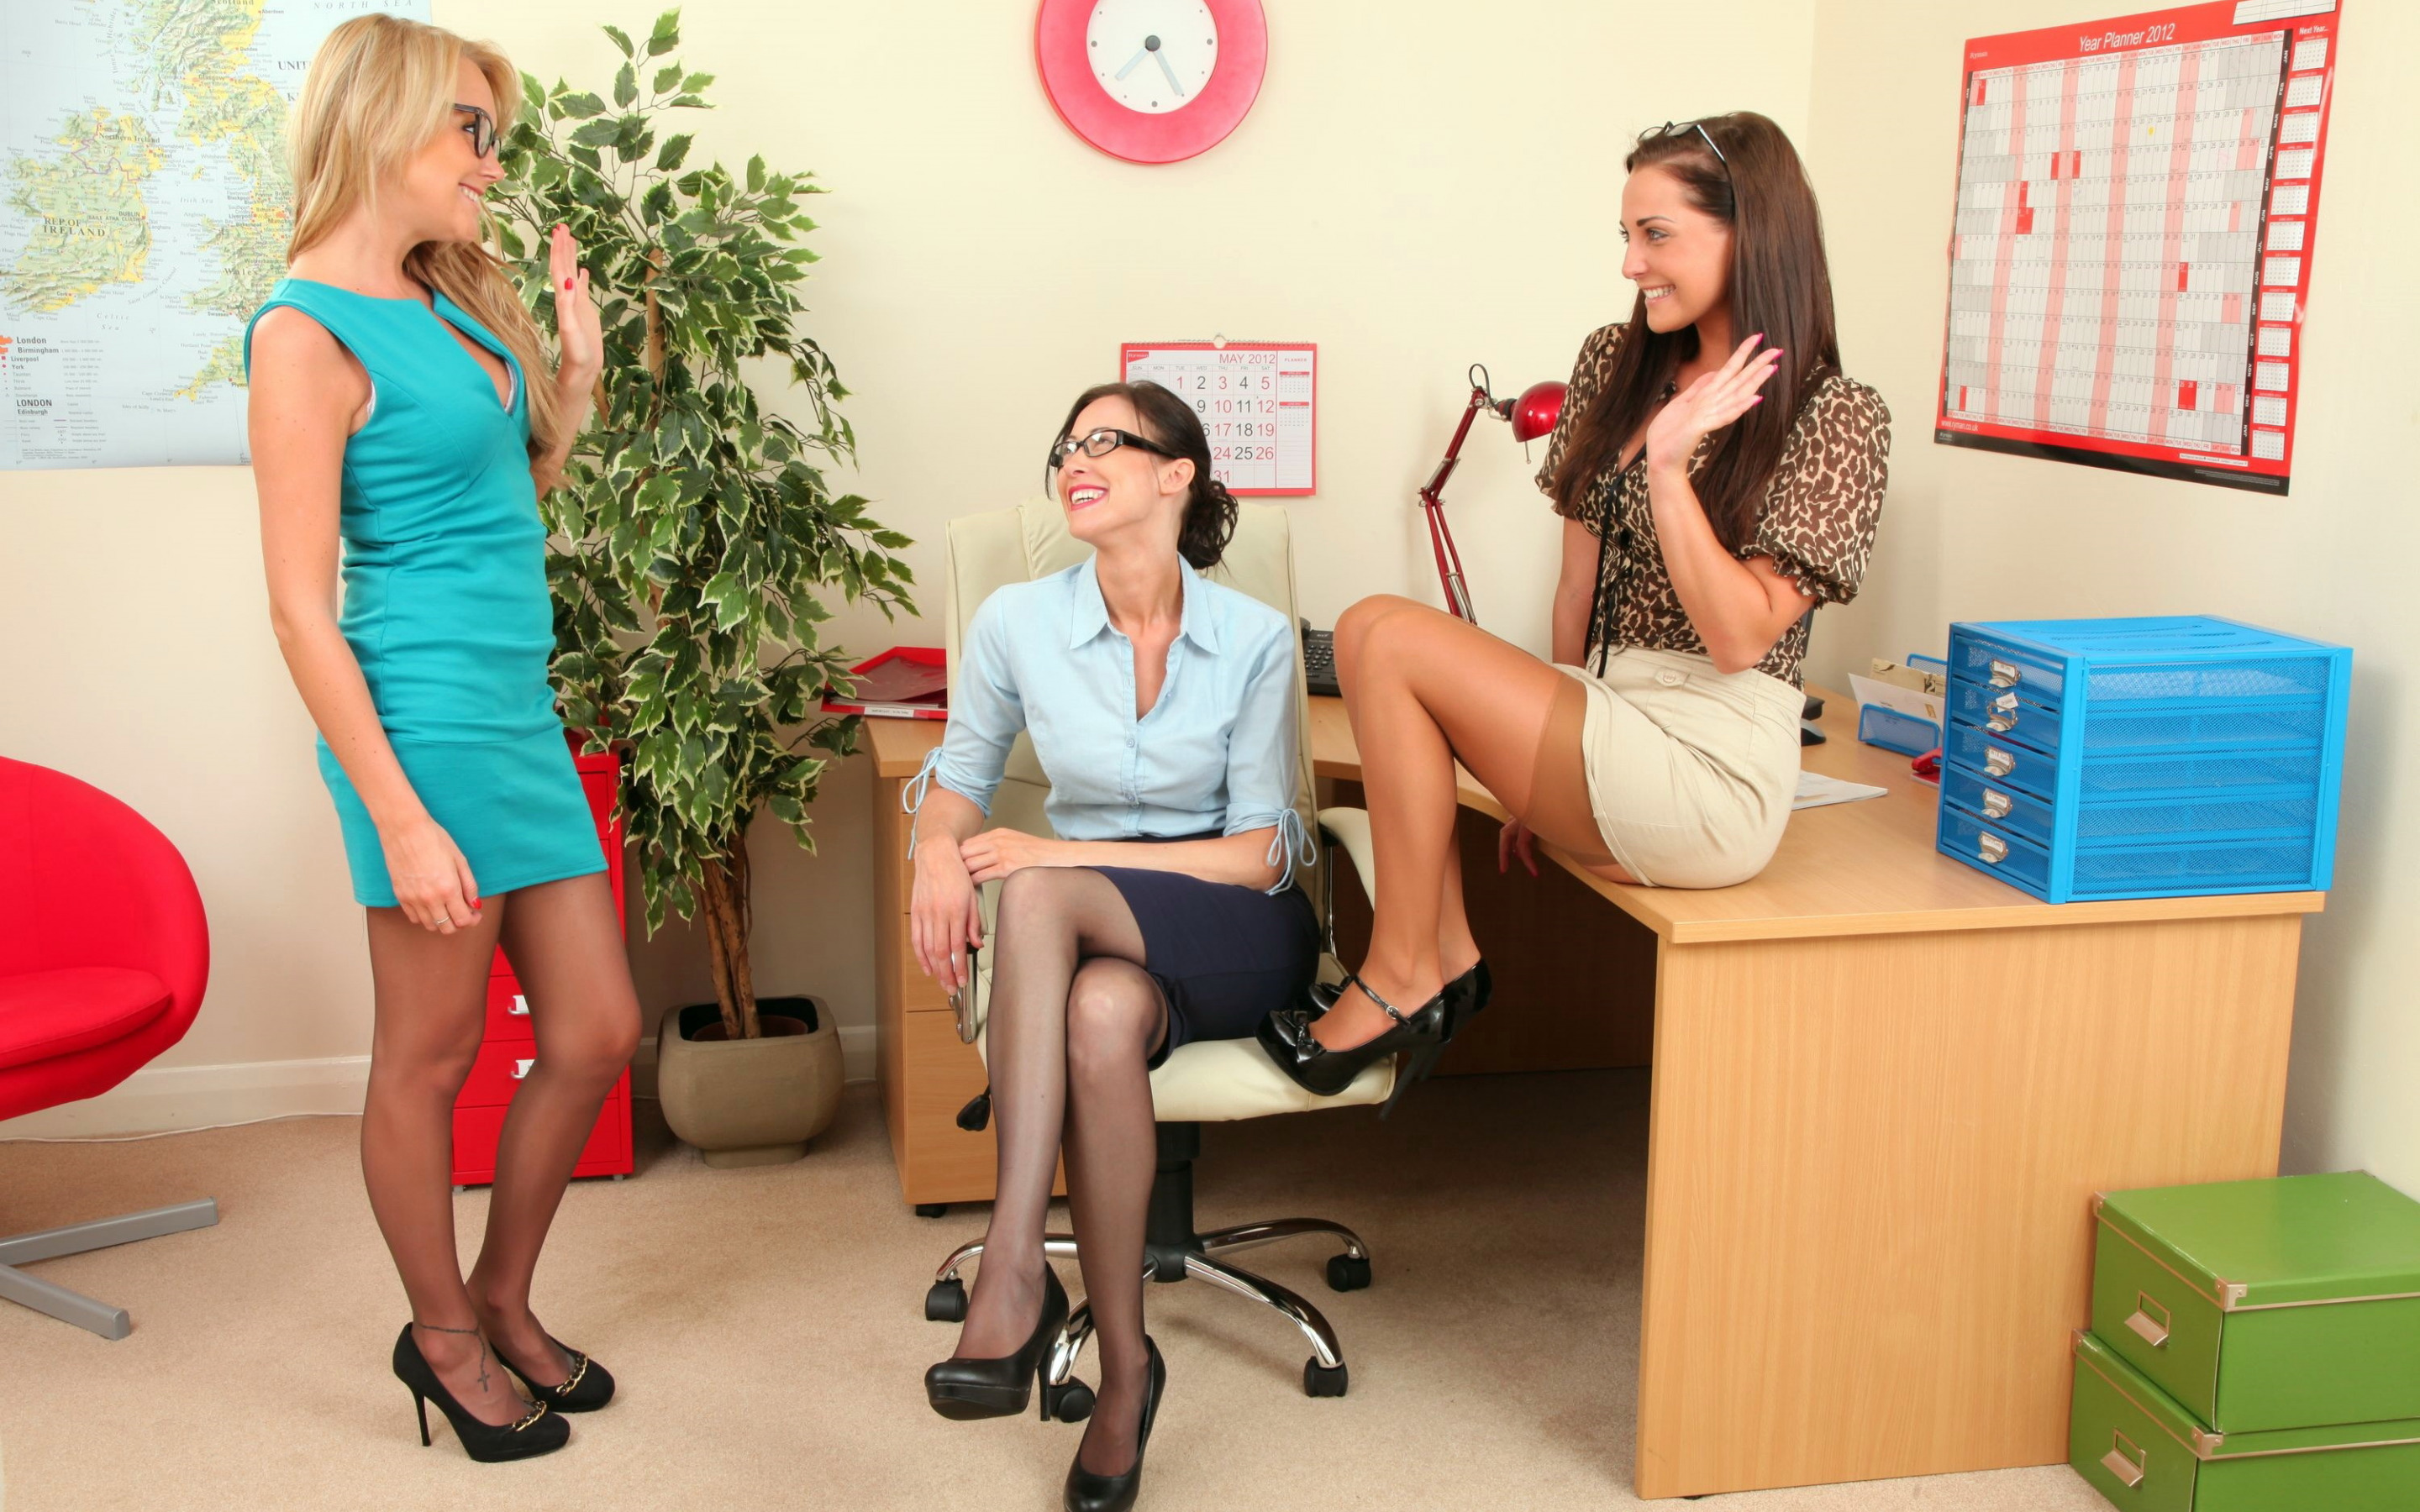 lesbian-group-office-hot-sex-videos-king-of-queens-pussy-lips